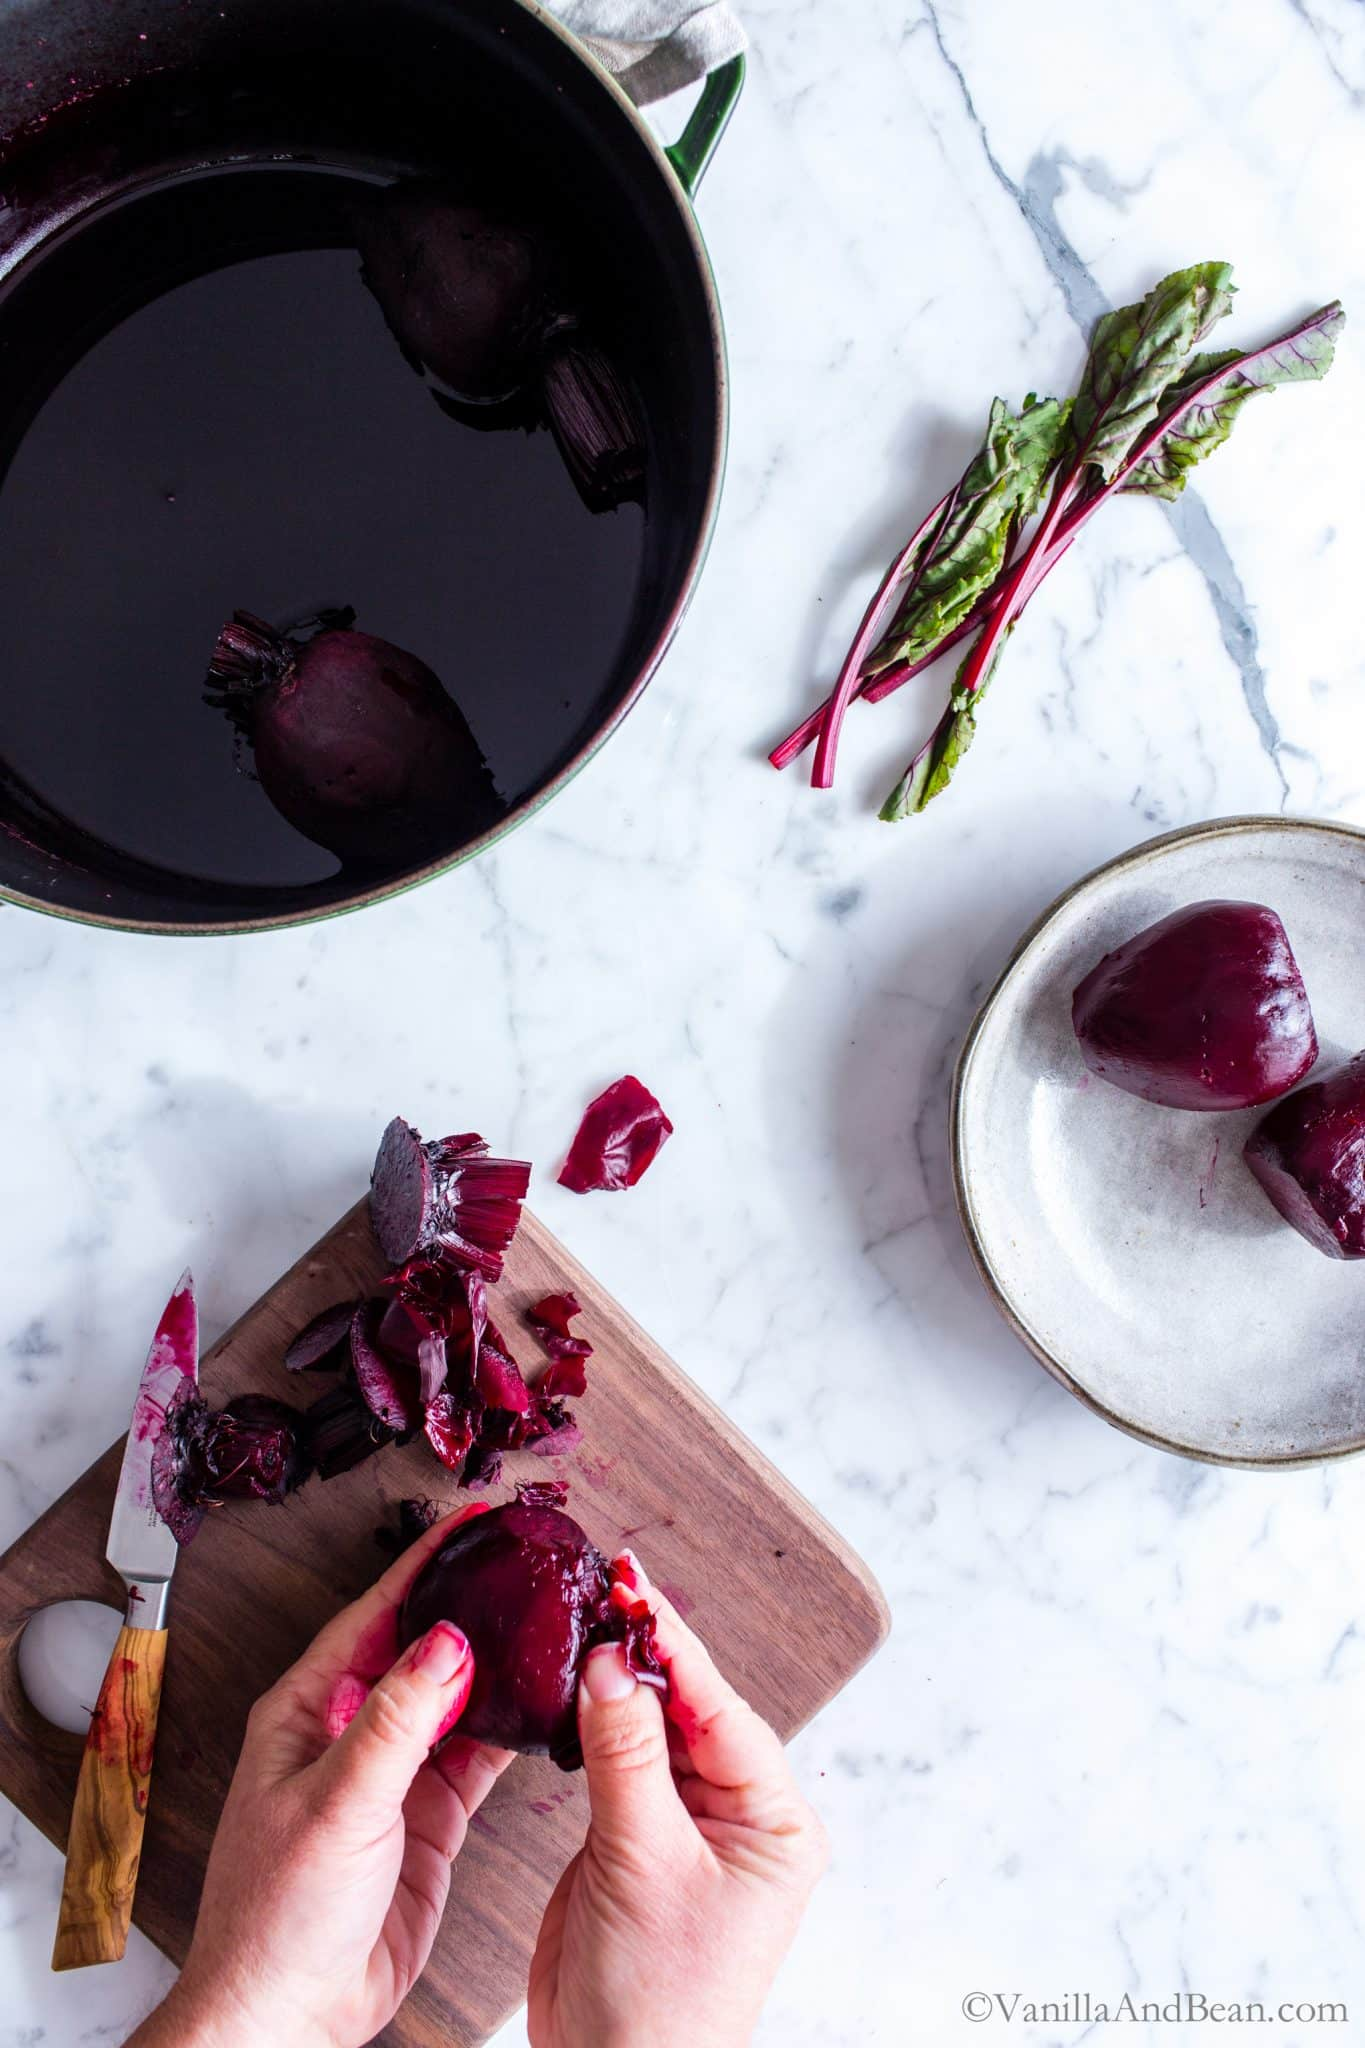 A favorite root vegetable for salads, pickling, smoothies, dips or snacking, I'm sharing  my best tips for How to Roast Beets using a simple, no waste method.